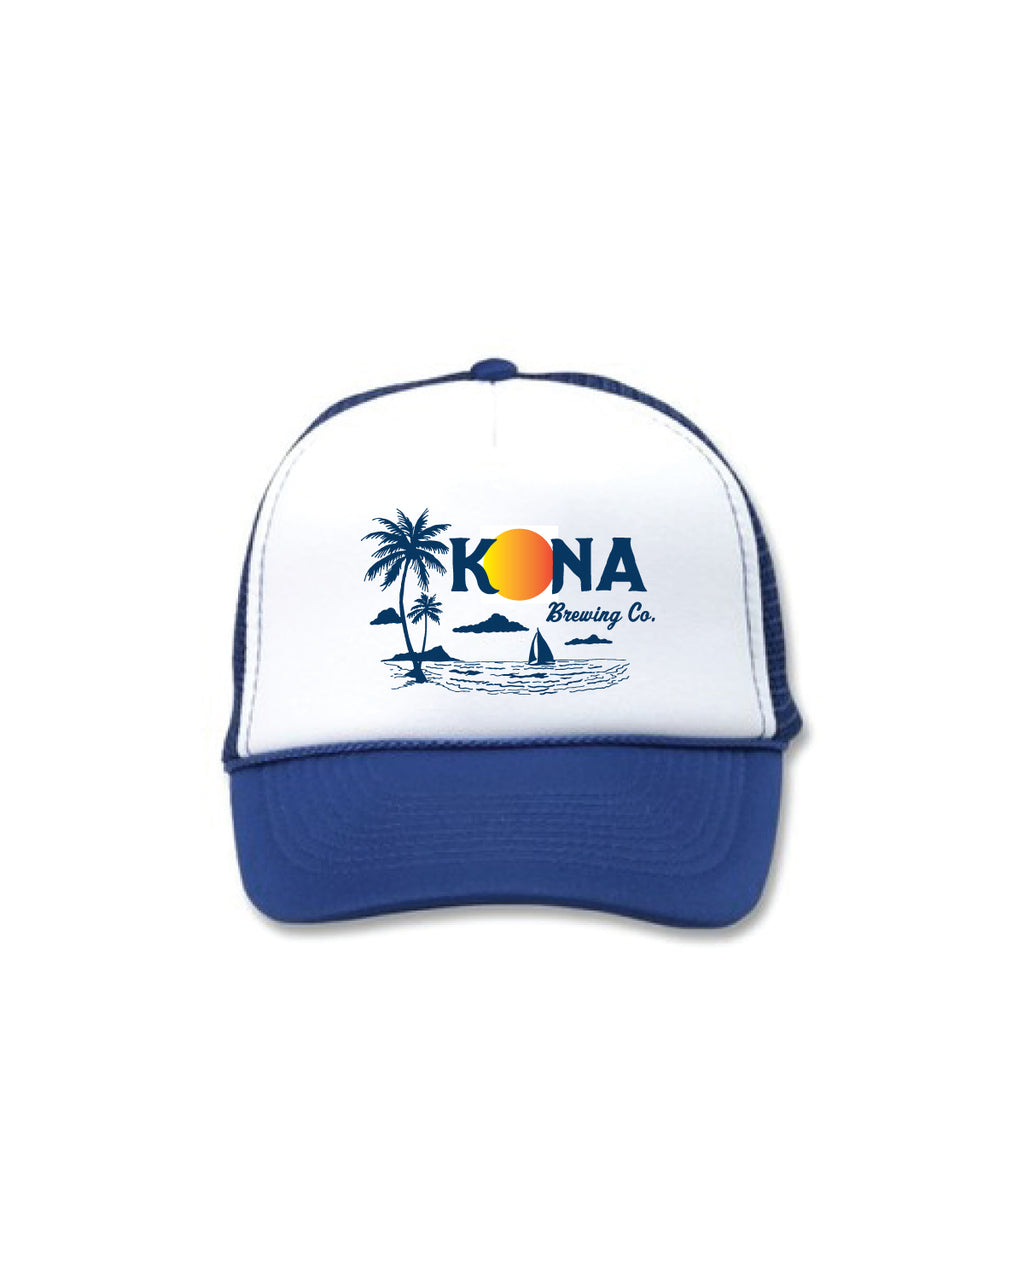 KONA SUSNET TRUCKER HAT- BLUE - Anderson Bros Design and Supply